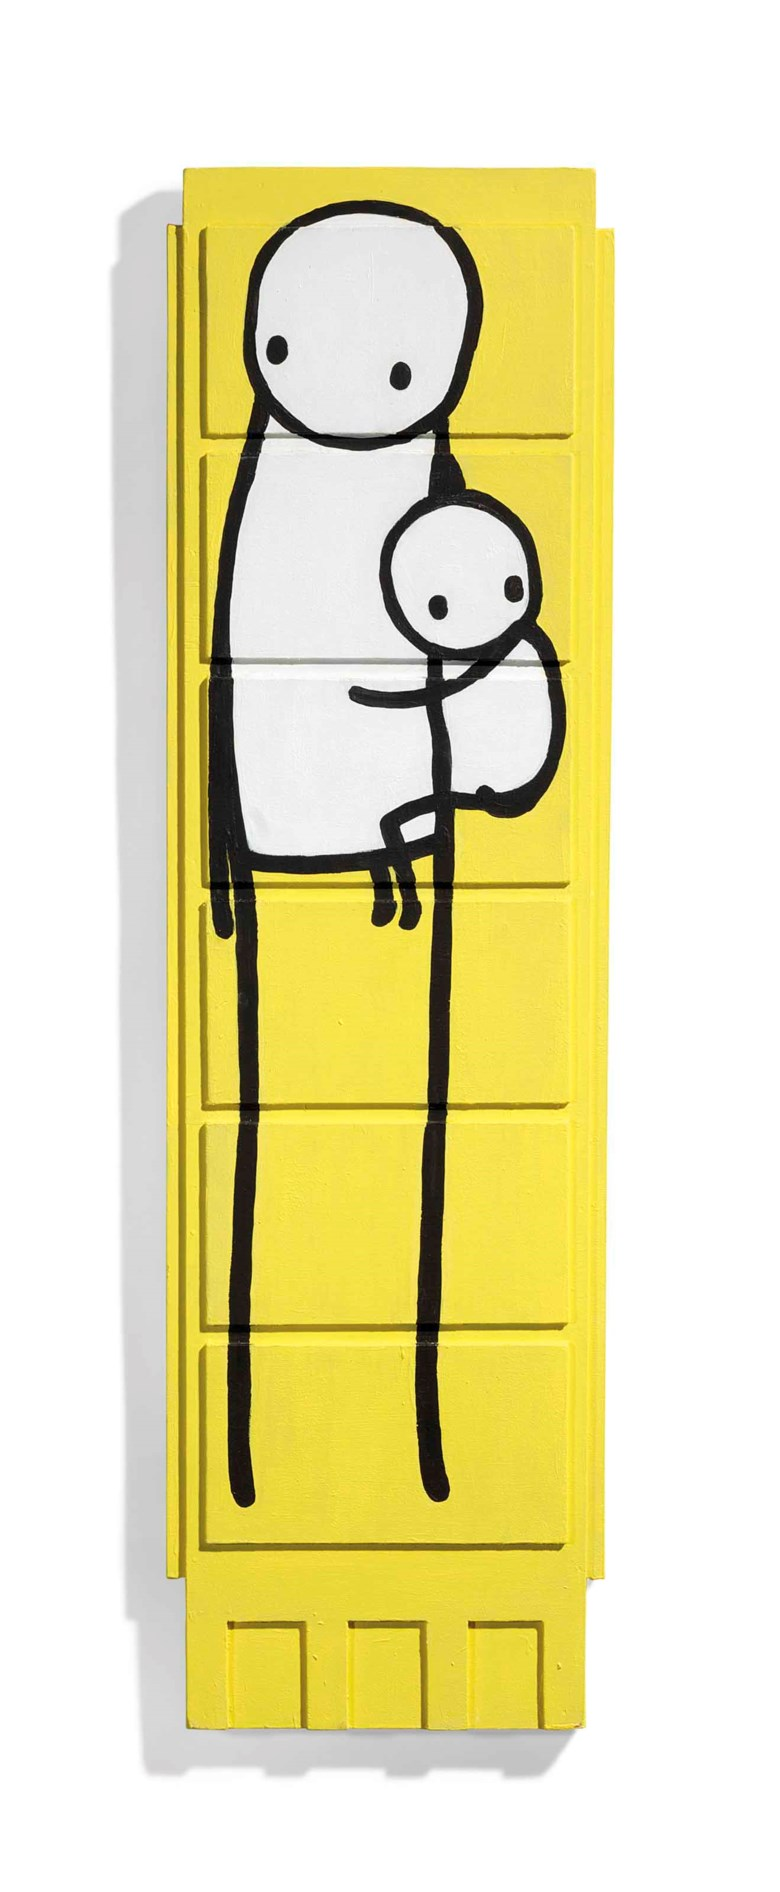 Stik (b. 1979), Little Big Mother. 985 x 280 x 40  mm (overall).  Sold for £52,500 on 28 March 2018  at Christie's in London